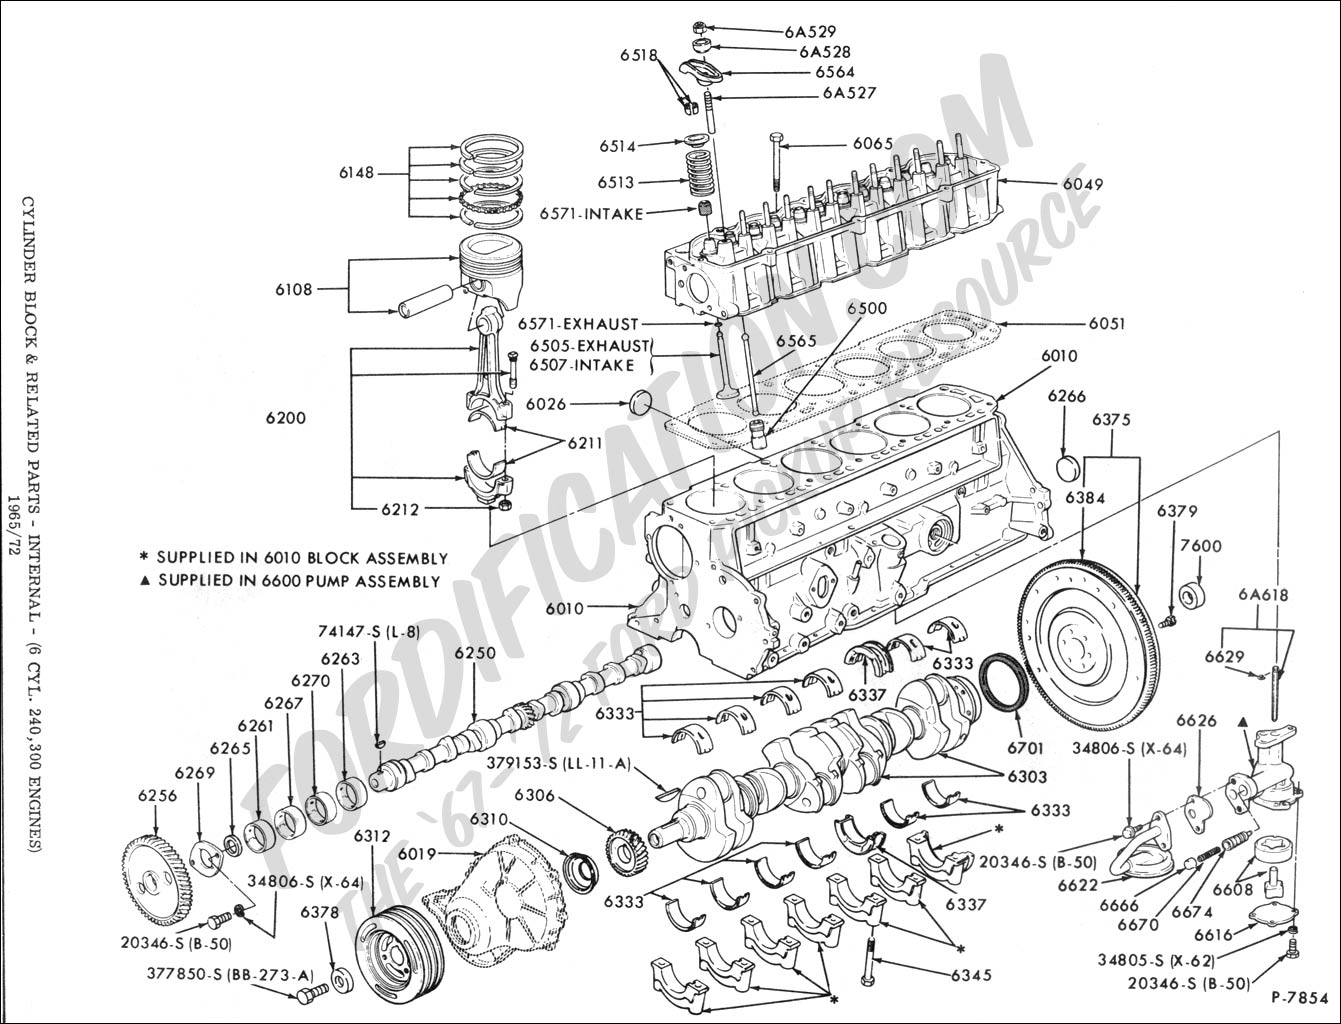 Lovely labeled car parts pictures inspiration electrical circuit